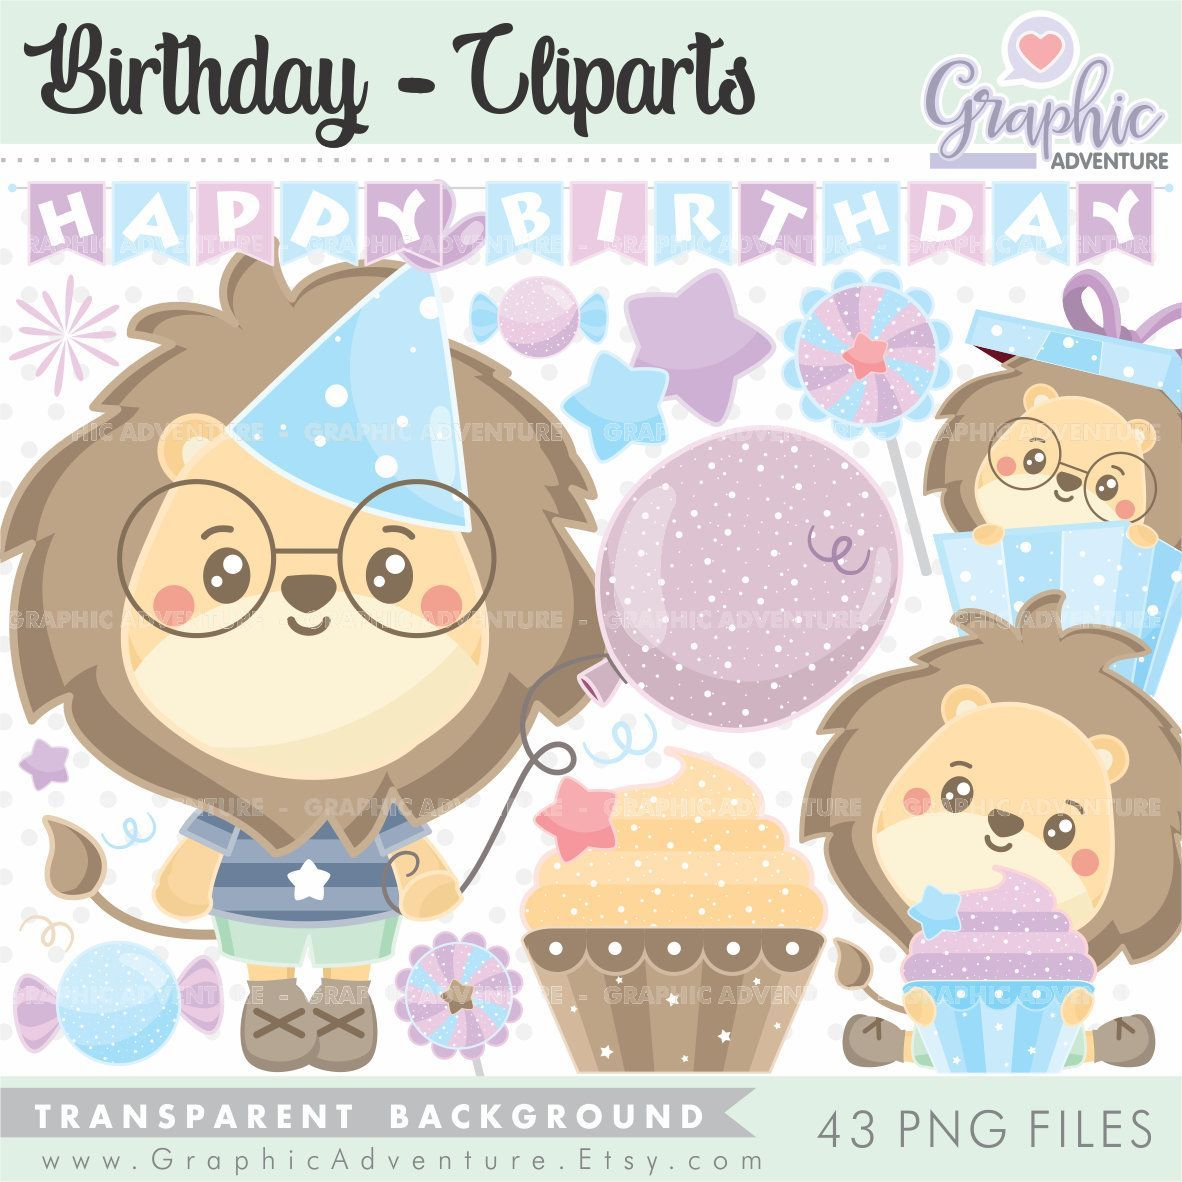 Birthday Clip Art Birthday Graphics Commercial Use Lion Clipart Hapy Birthday Animal Clipart Gift Clipart Celebrati Birthday Clips Art Birthday Clip Art